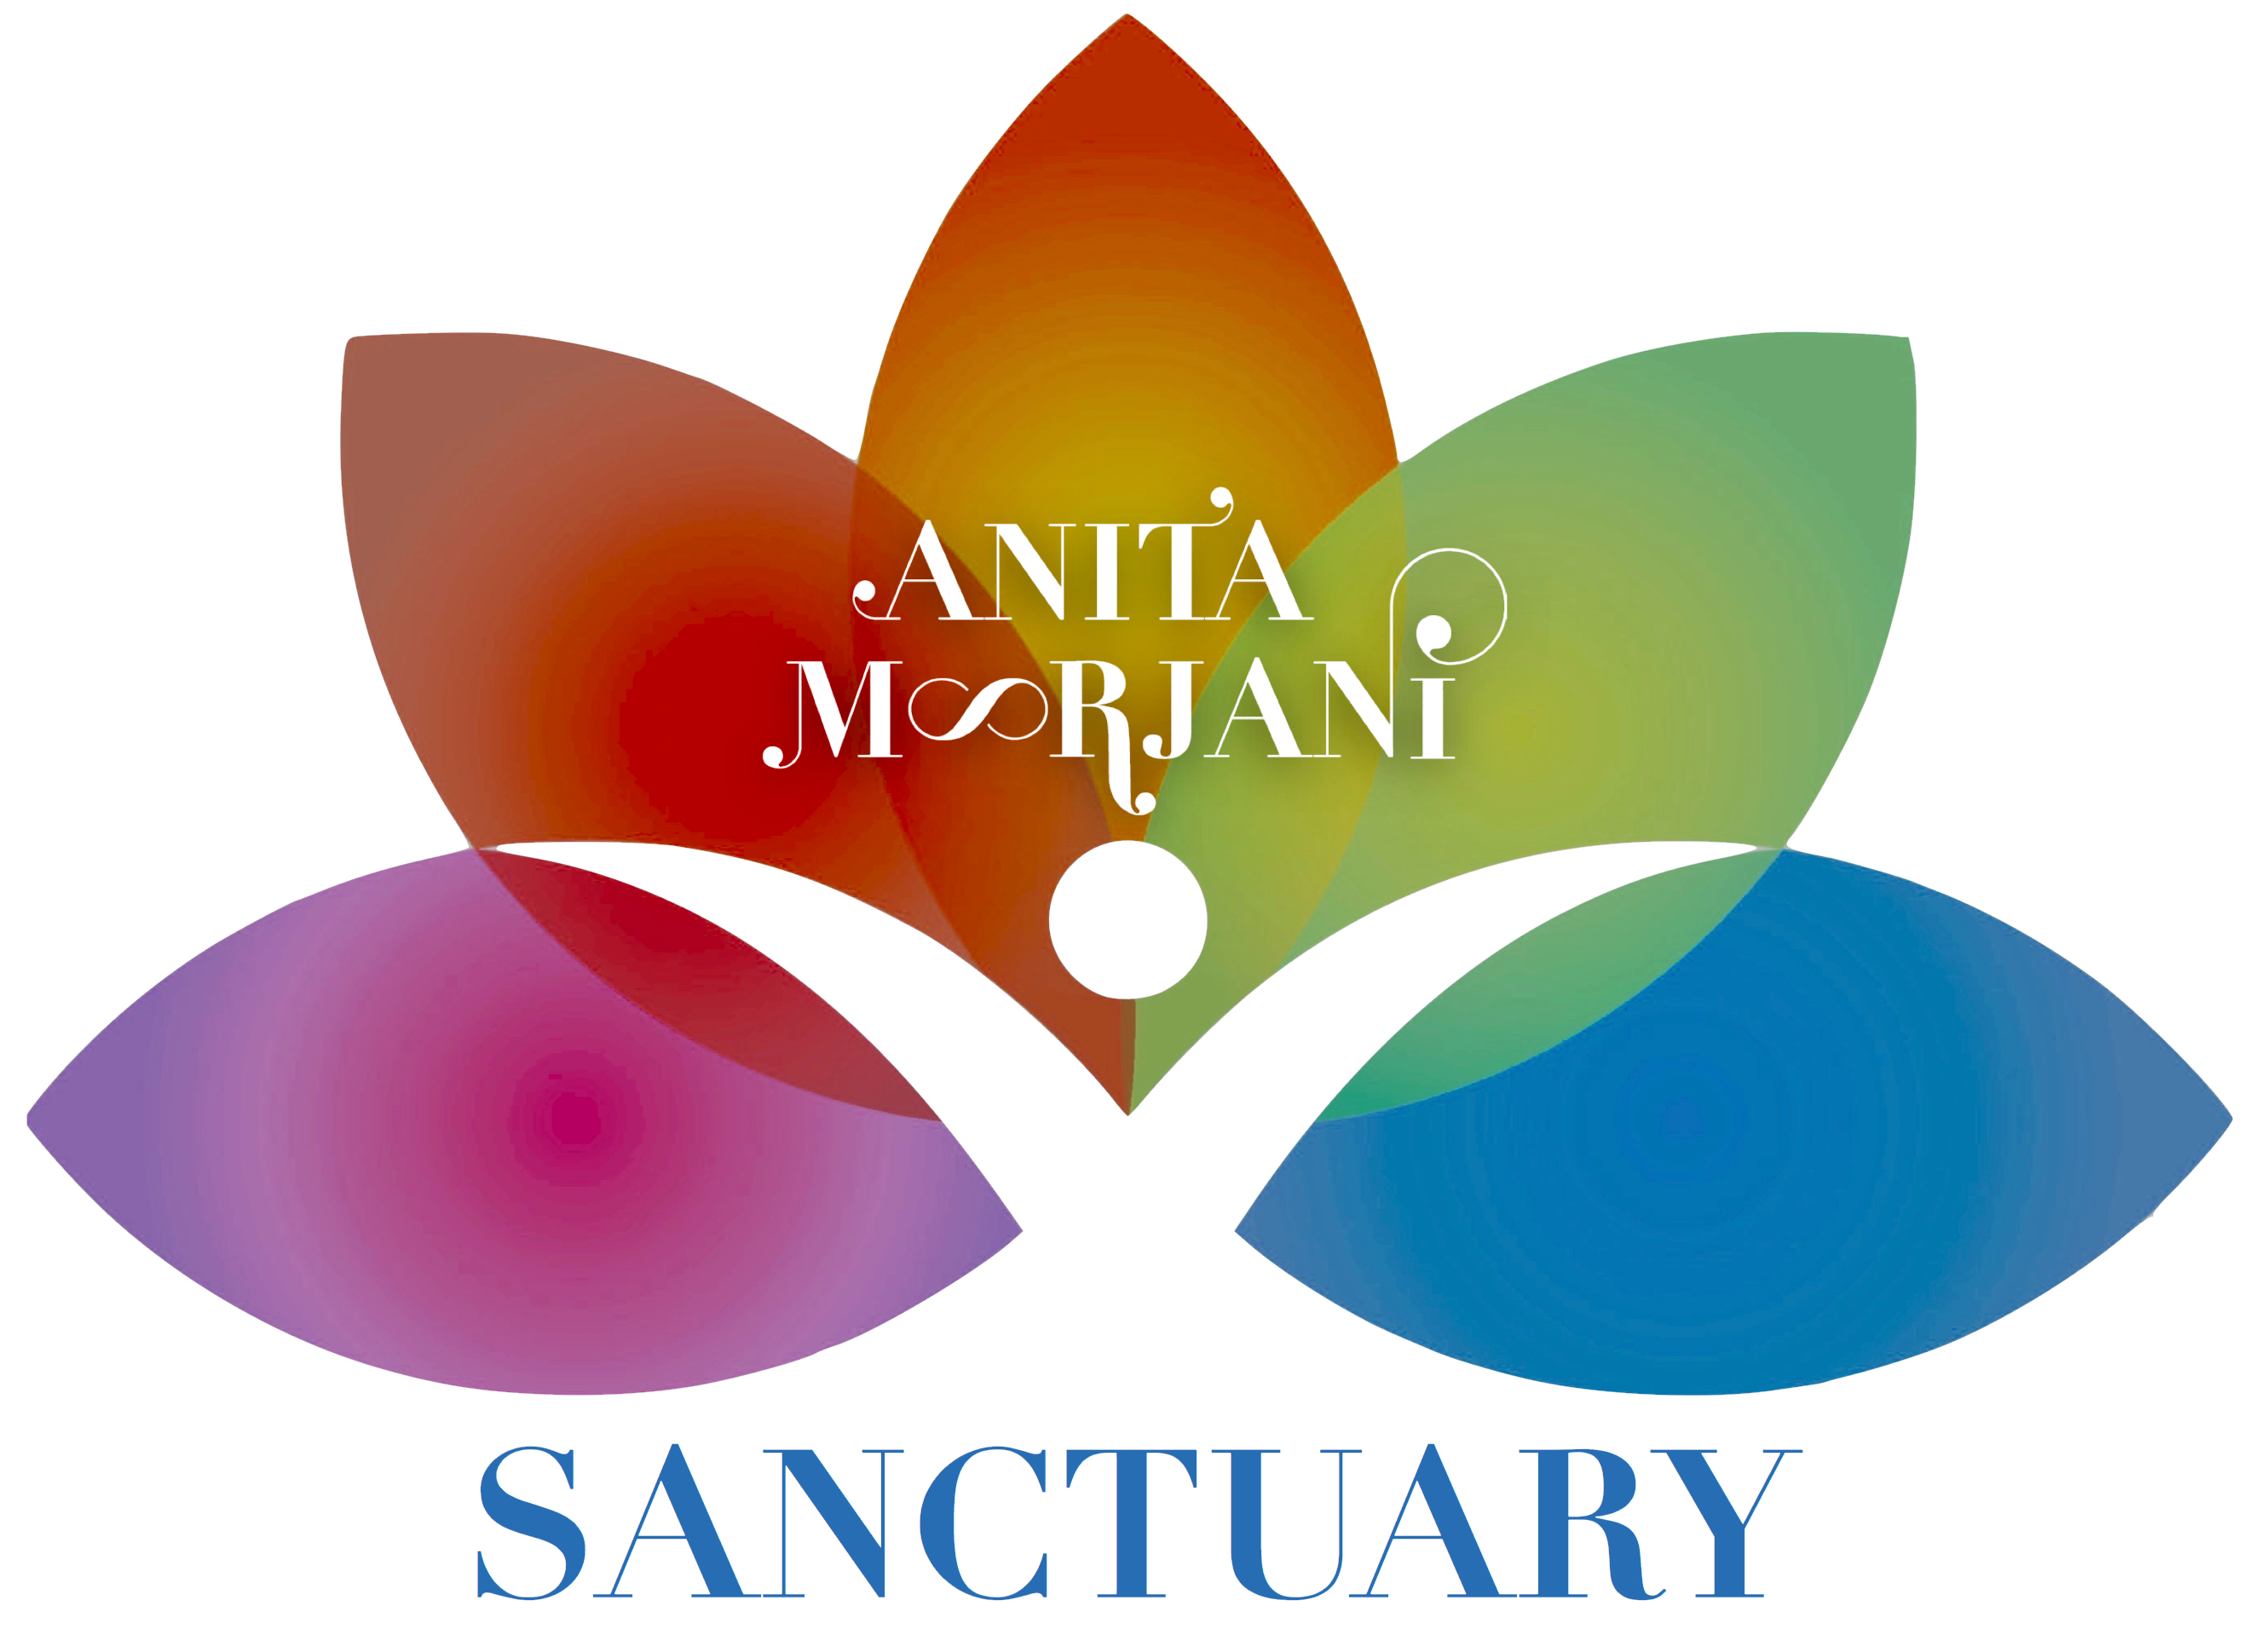 0000 anitasanctuarylogoedited